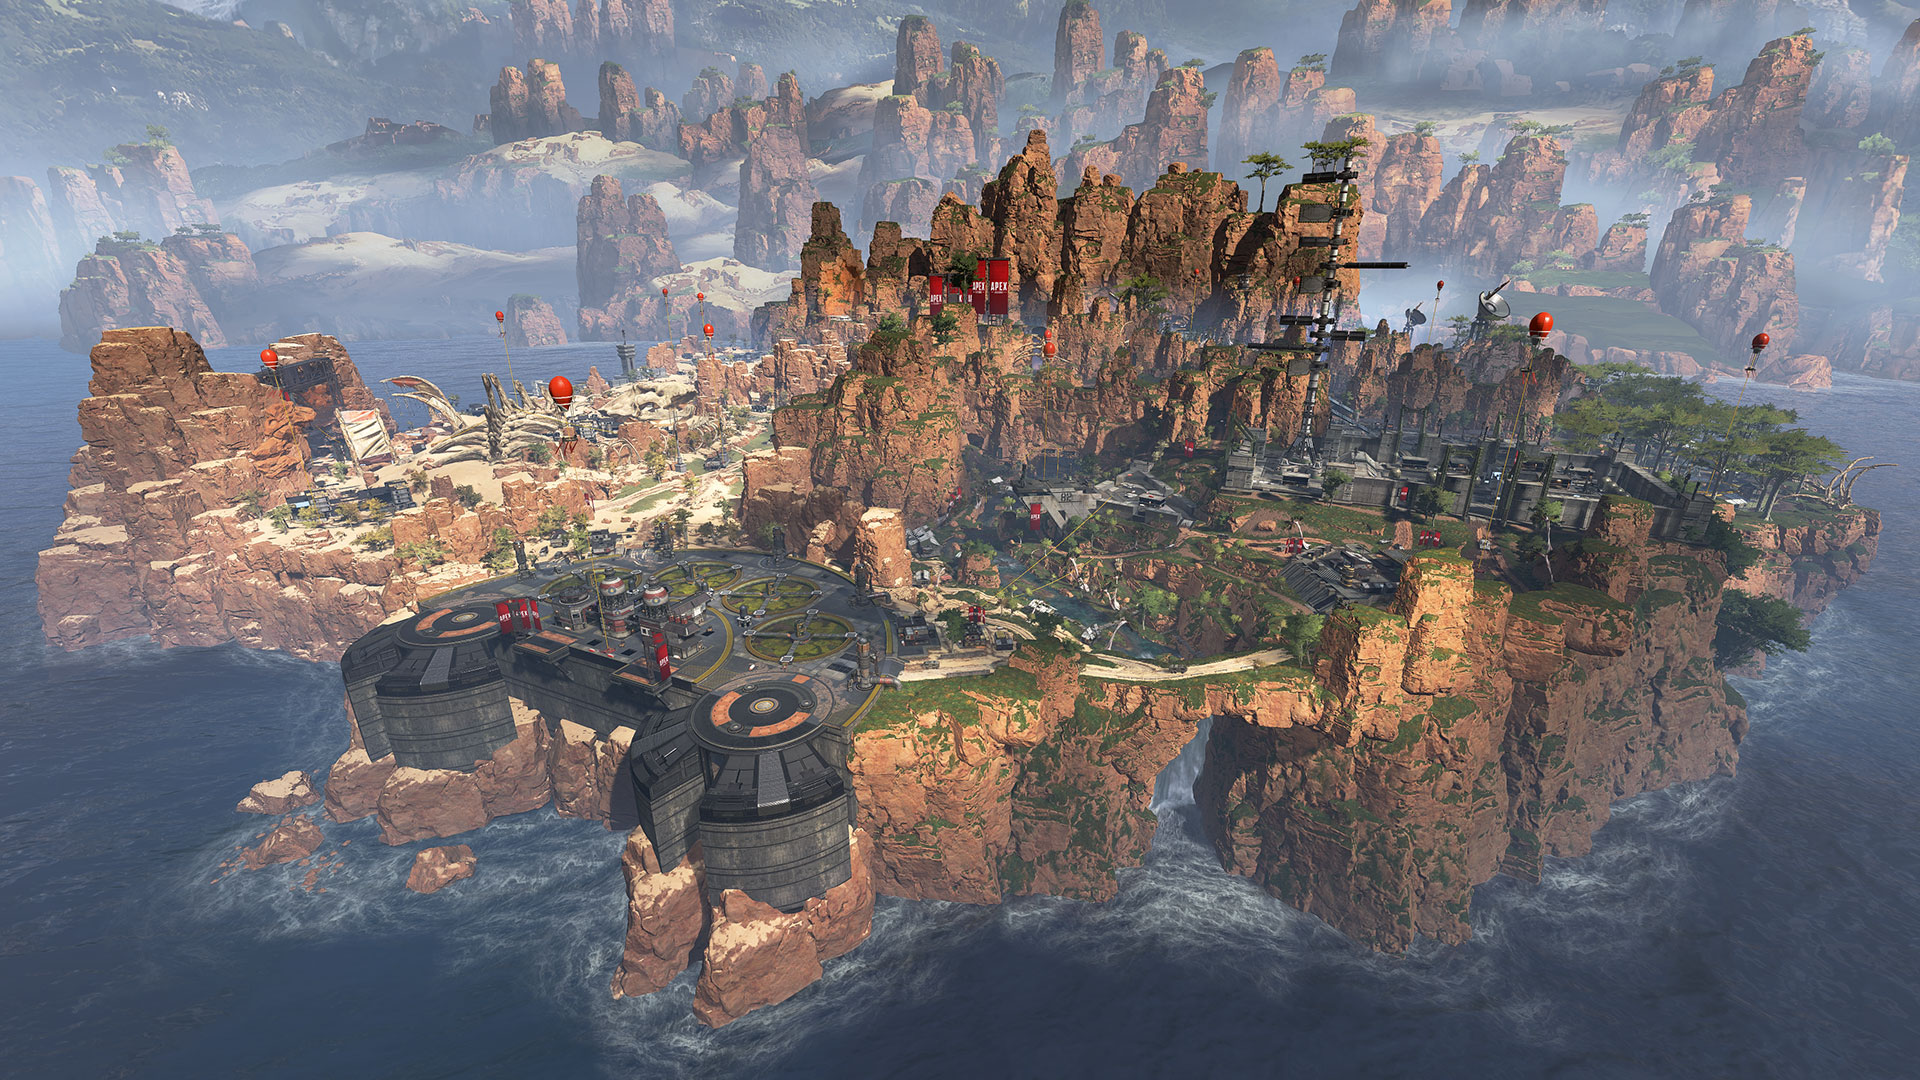 Apex Legends cross platform play: Everything we know about cross